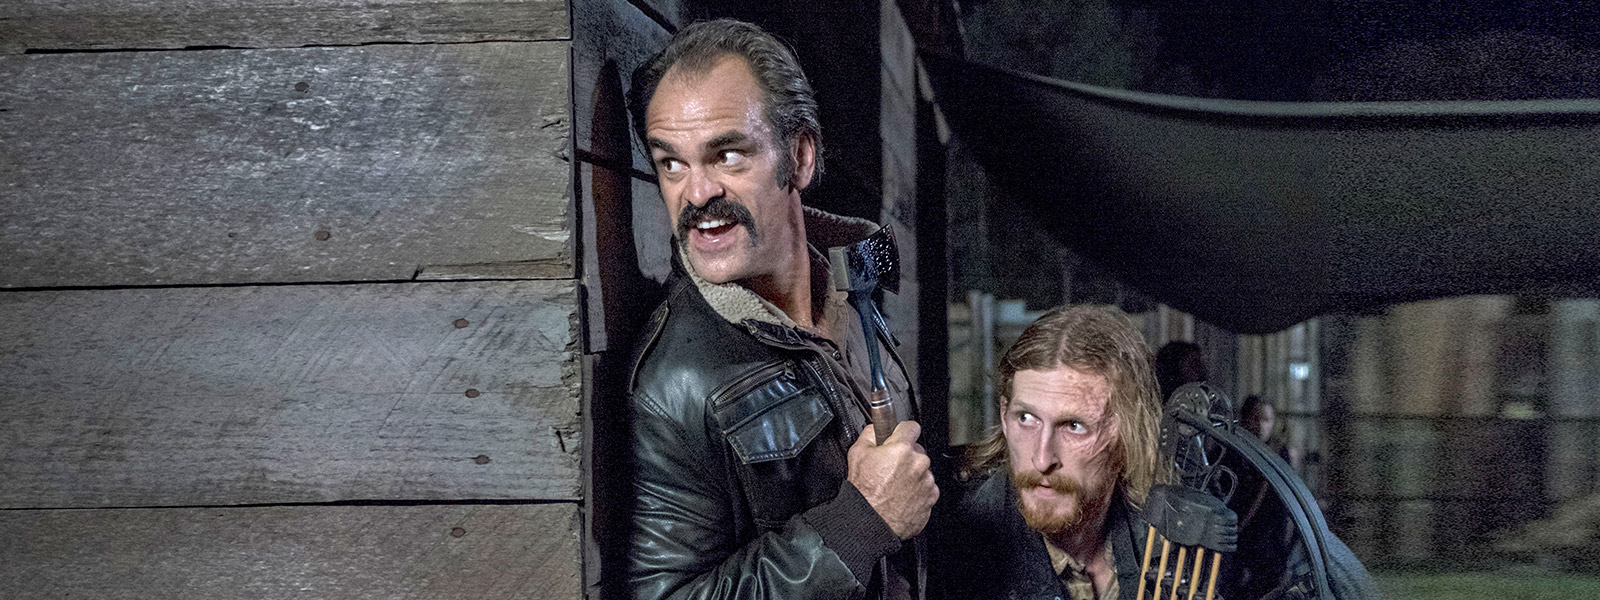 the-walking-dead-episode-813-simon-ogg-dwight-amelio-post-800×600